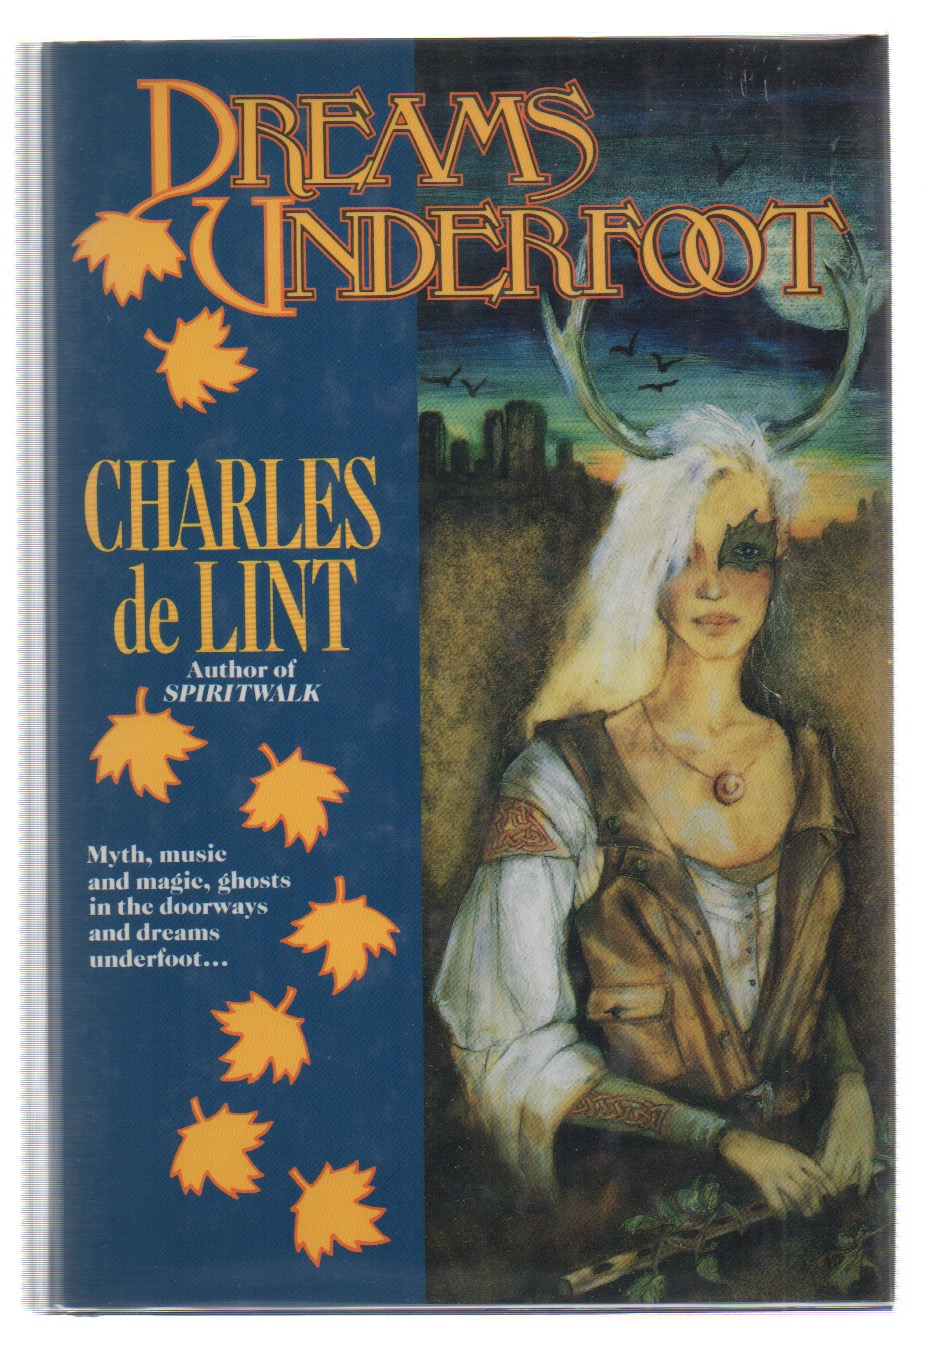 Image result for charles de lint dreams underfoot